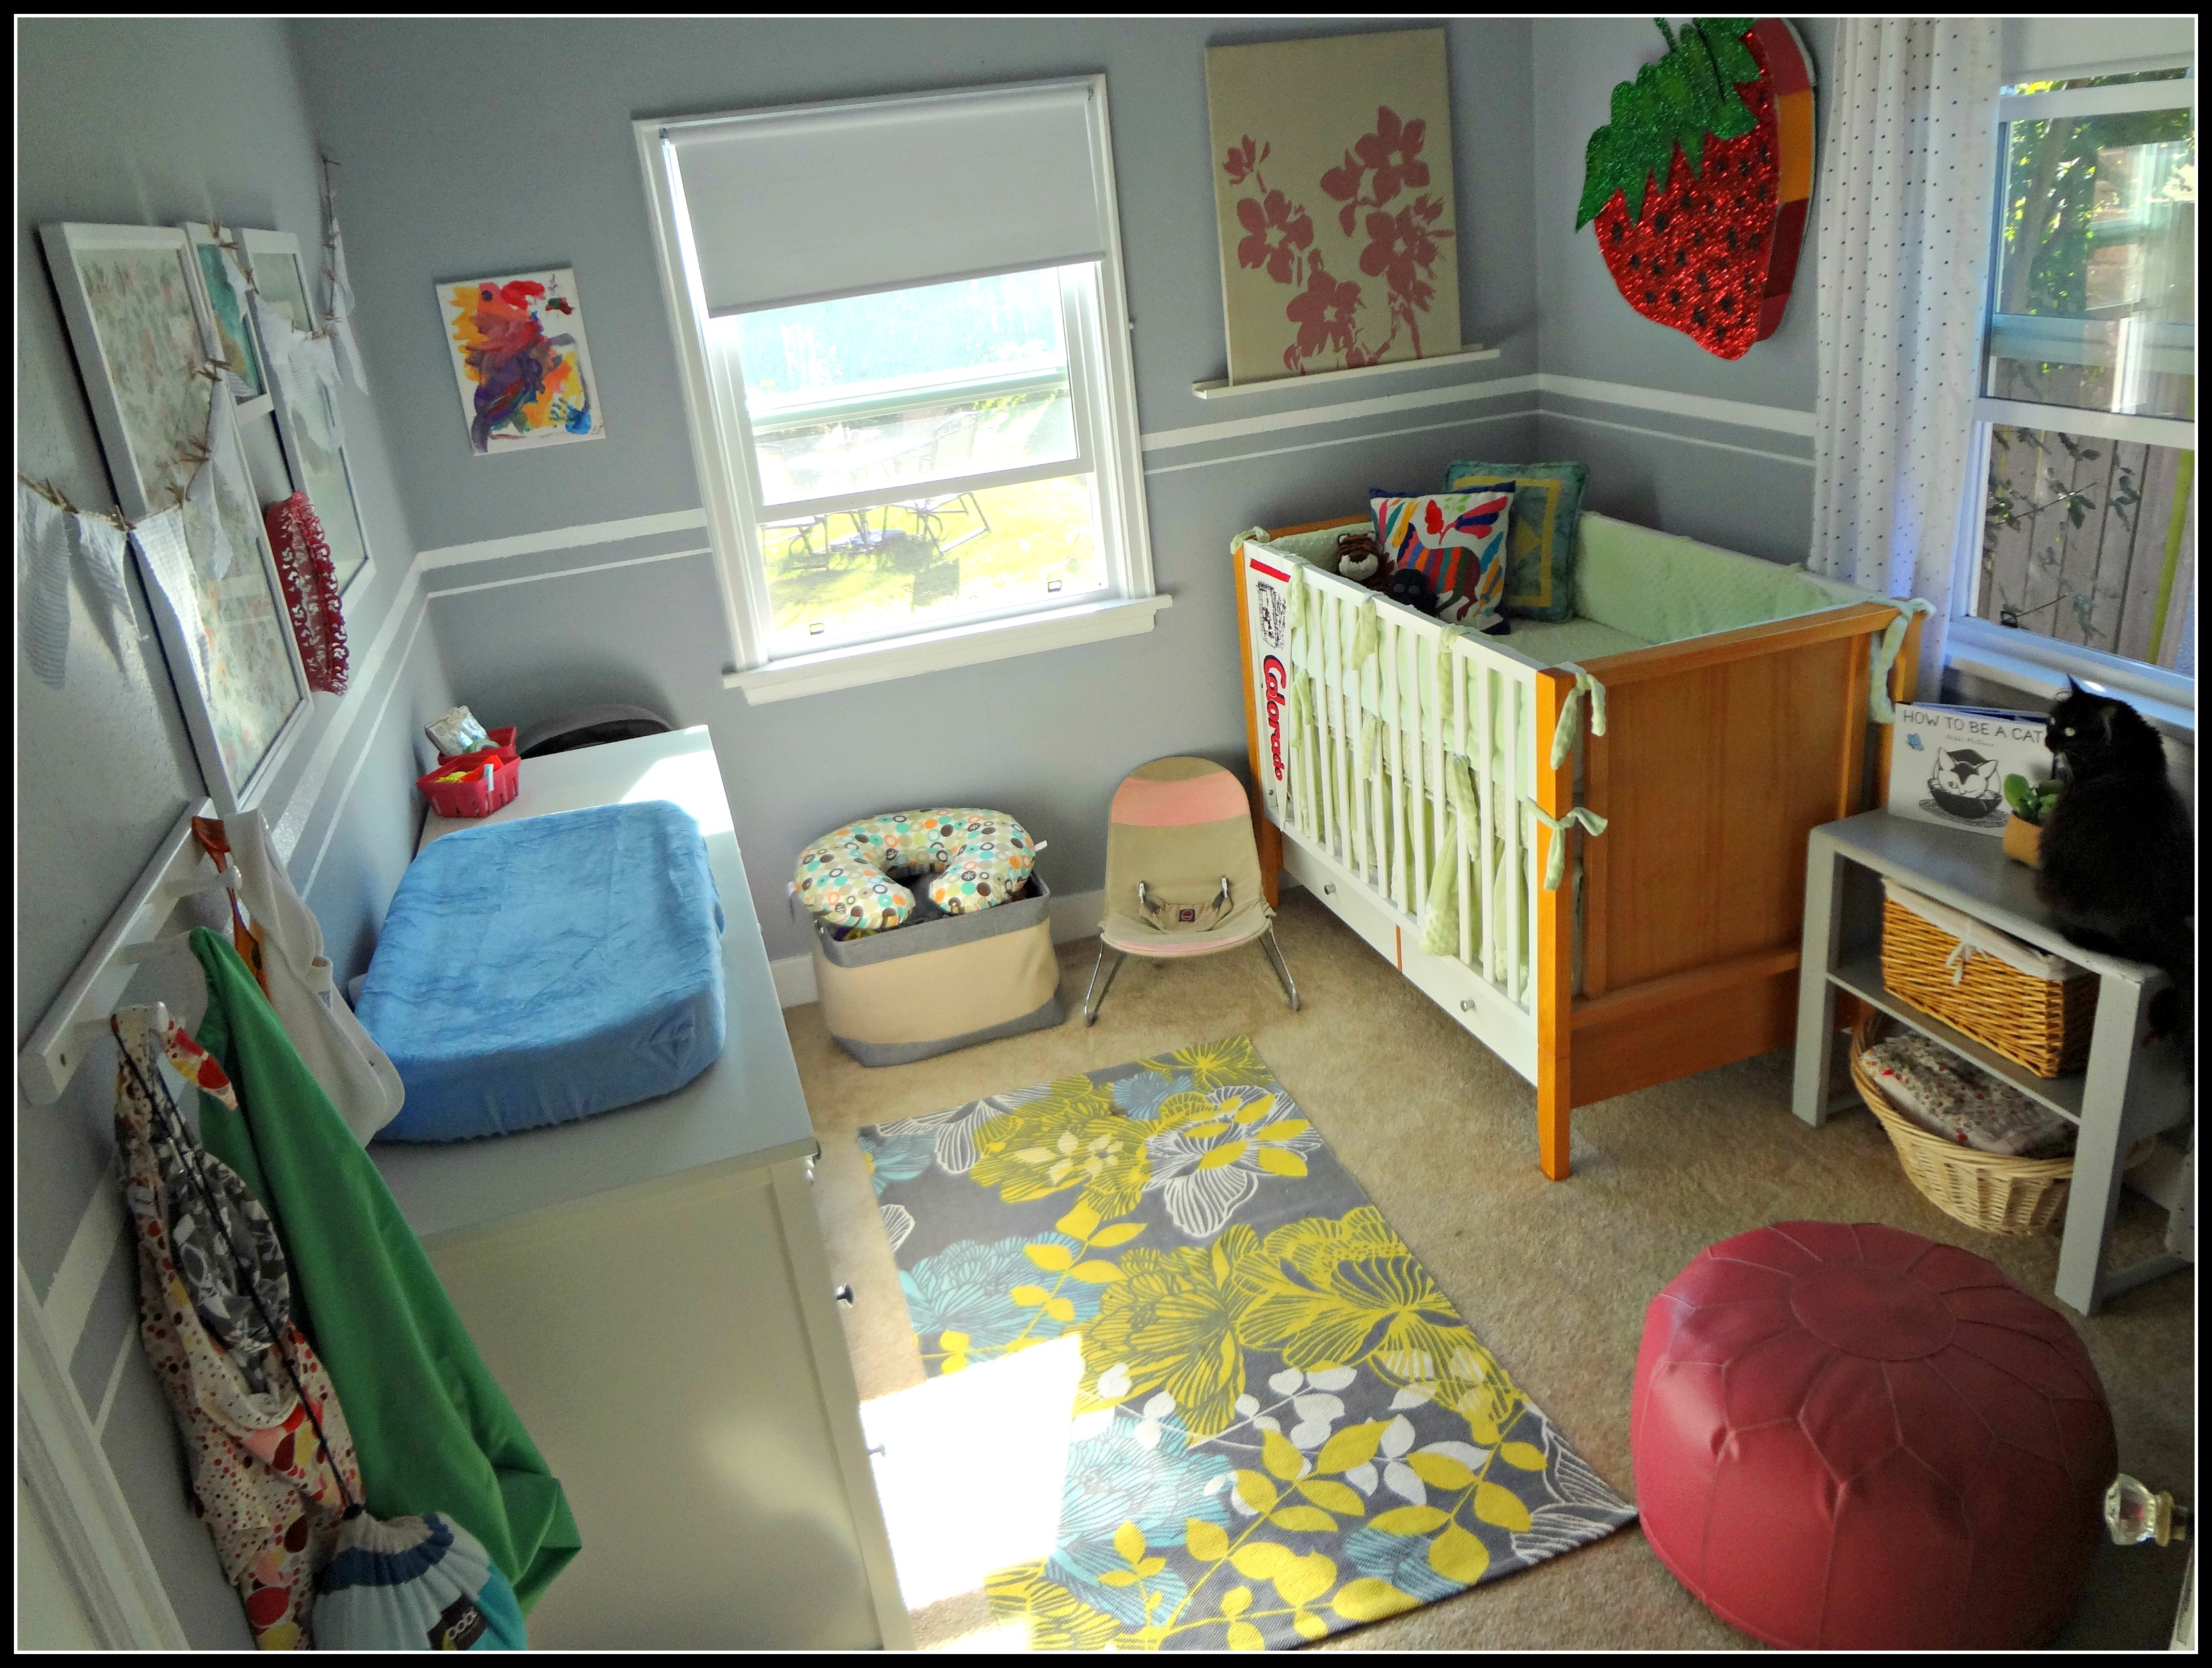 The Room Is Quite Tiny. Maybe 8u0027x10u2032? It Will Work Well For A Baby, But  This Whole House Makes Me Nervous For A Toddler! Ugh Where Will All Her  Stuff Go?